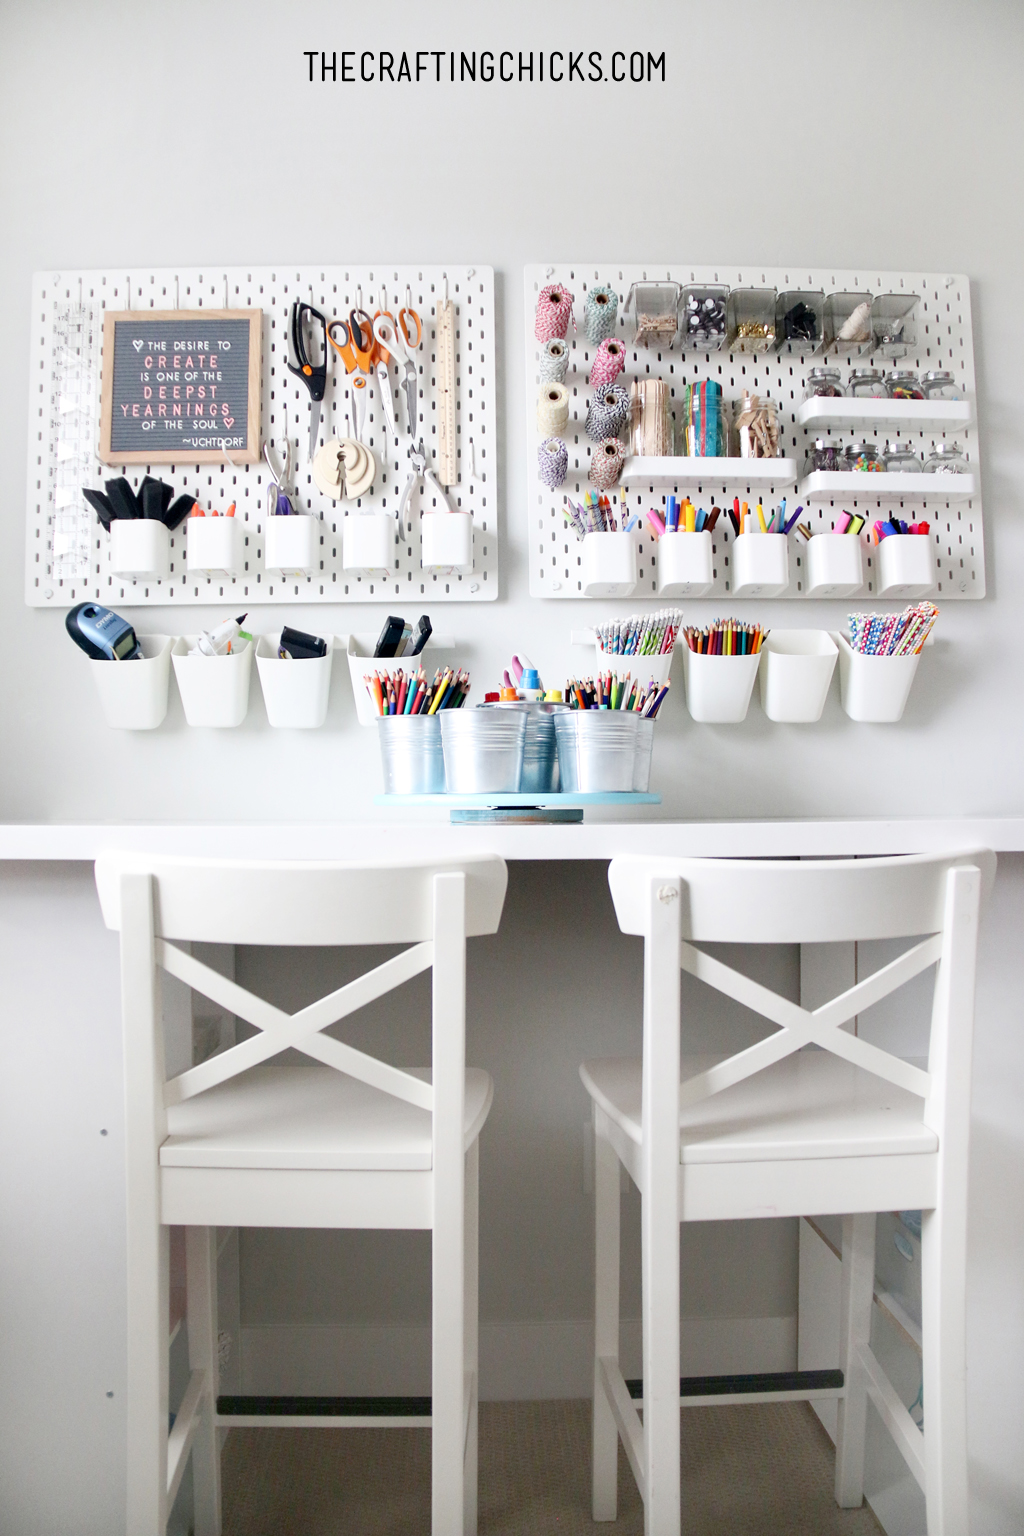 Wall with white peg board and craft supplies on it. Table and white stools in front for a crafting space.